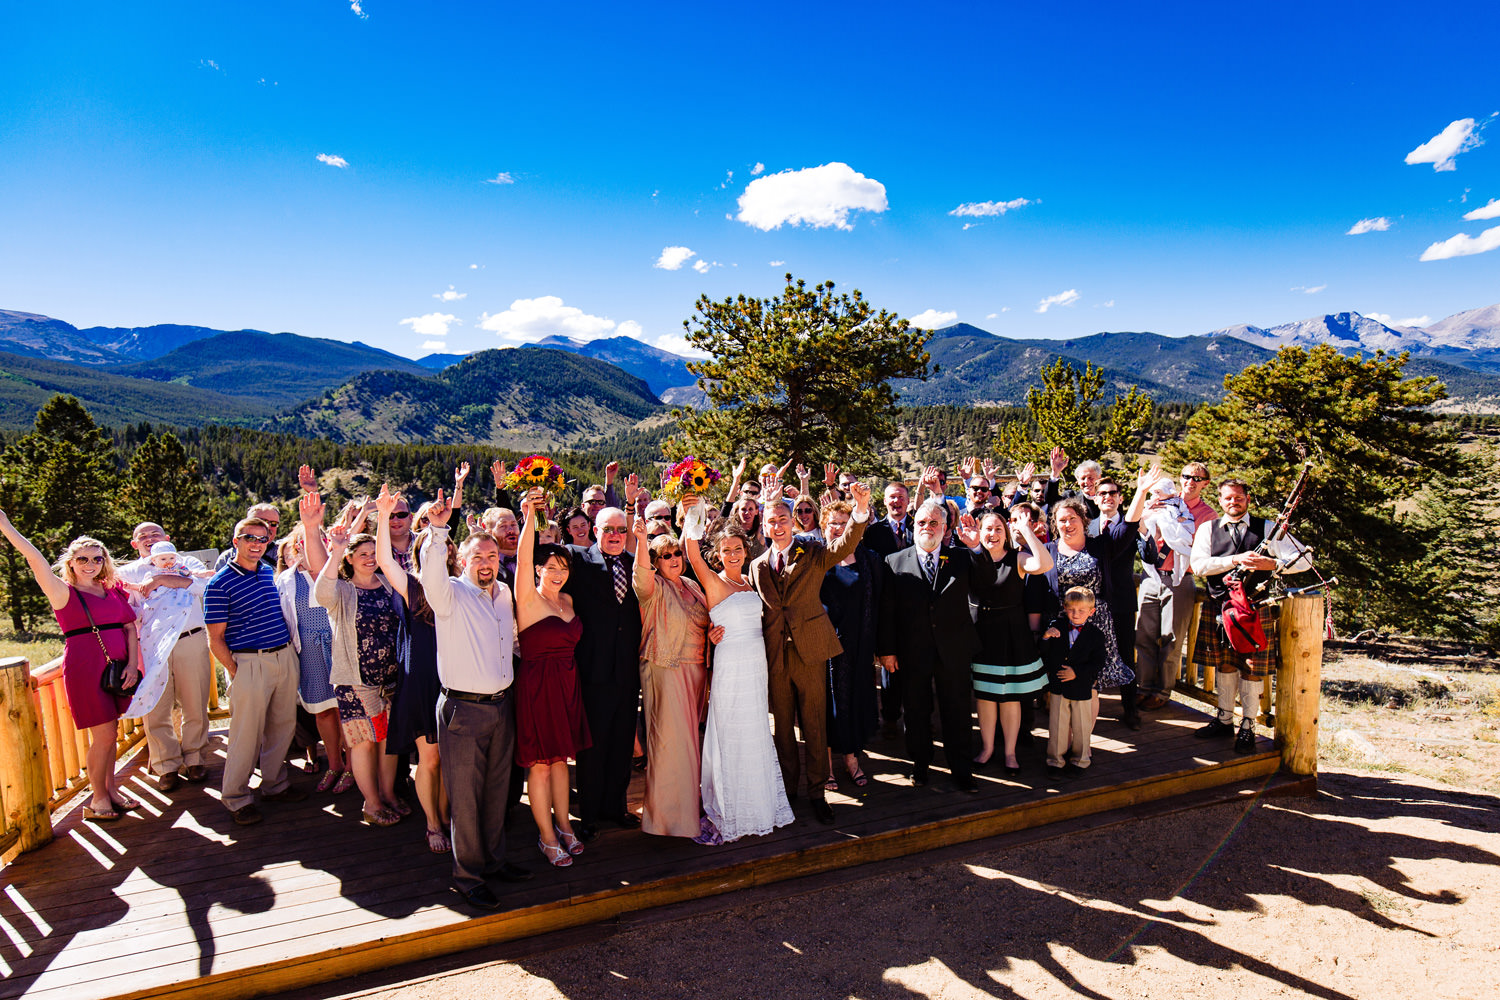 ymca-of-the-rockies-wedding-estes-park-018.jpg